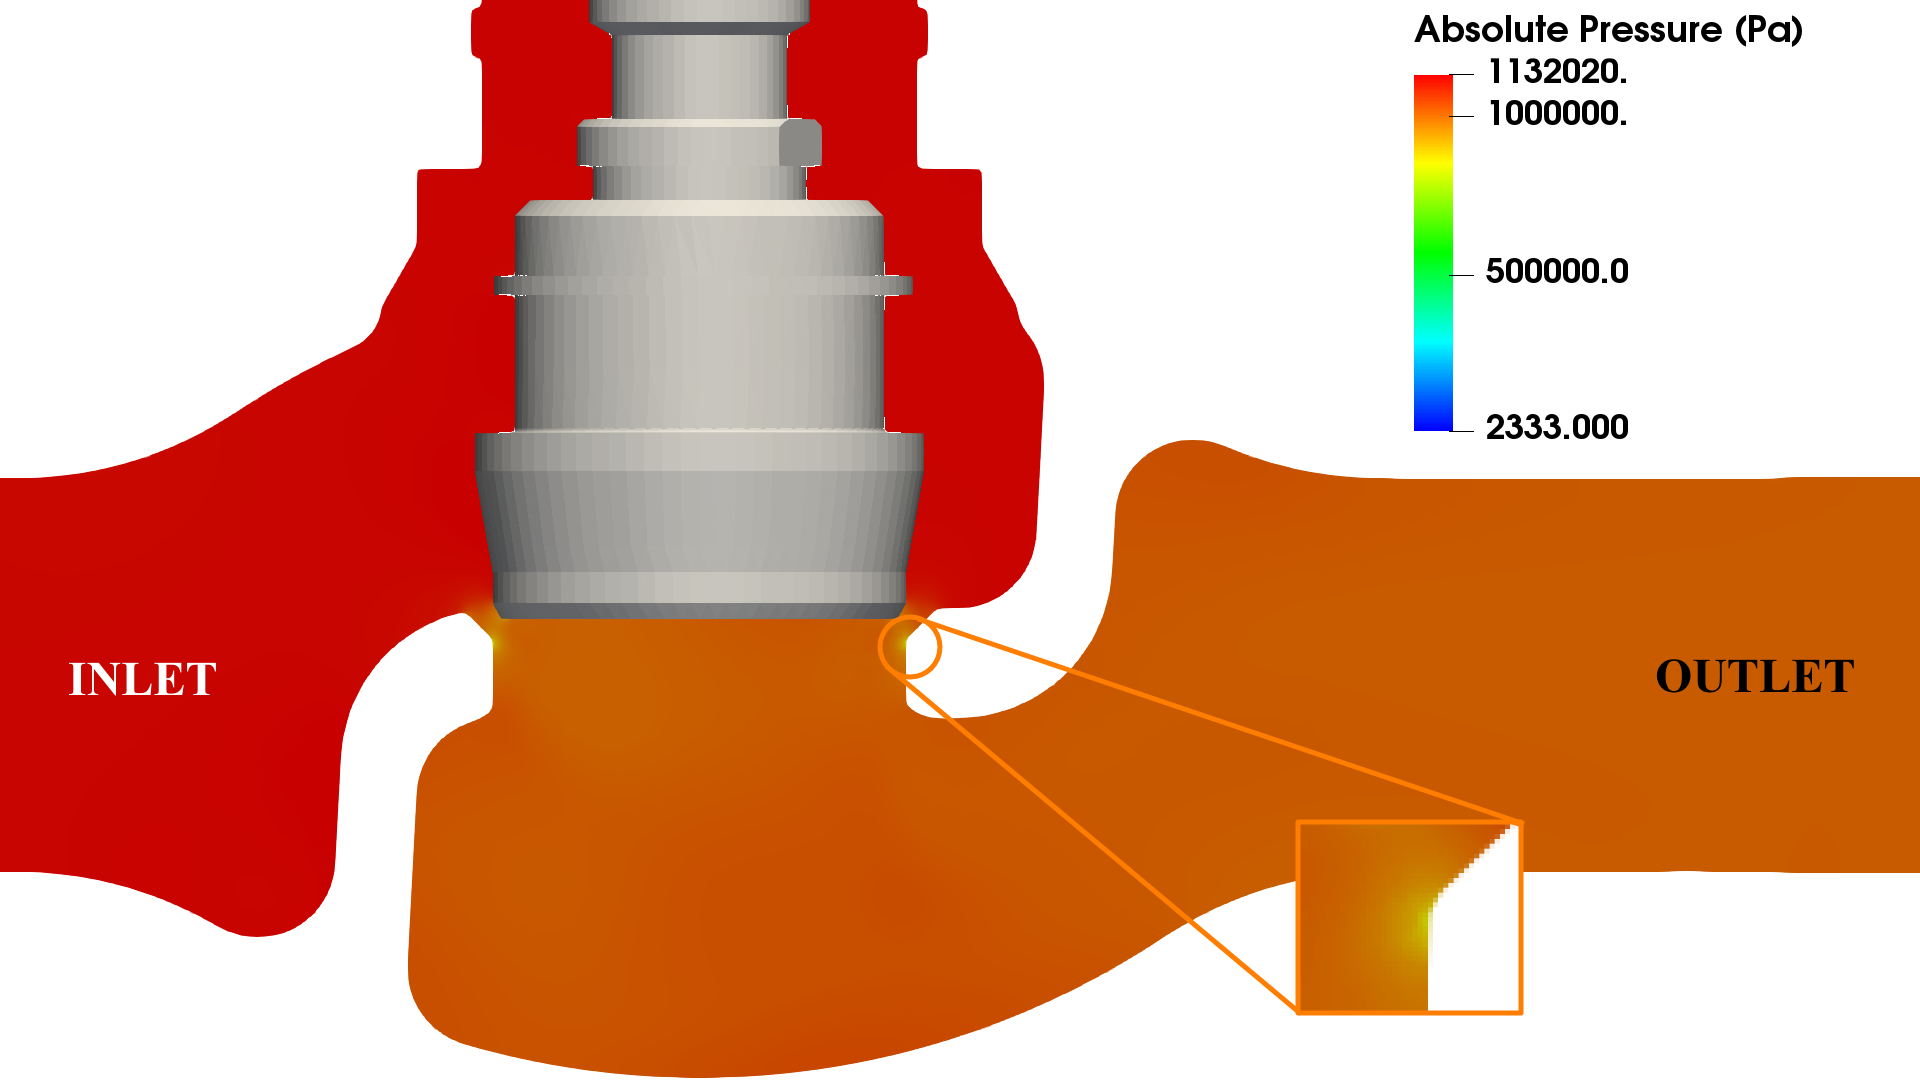 Valve cavitation CFD - outlet pressure 10 bar